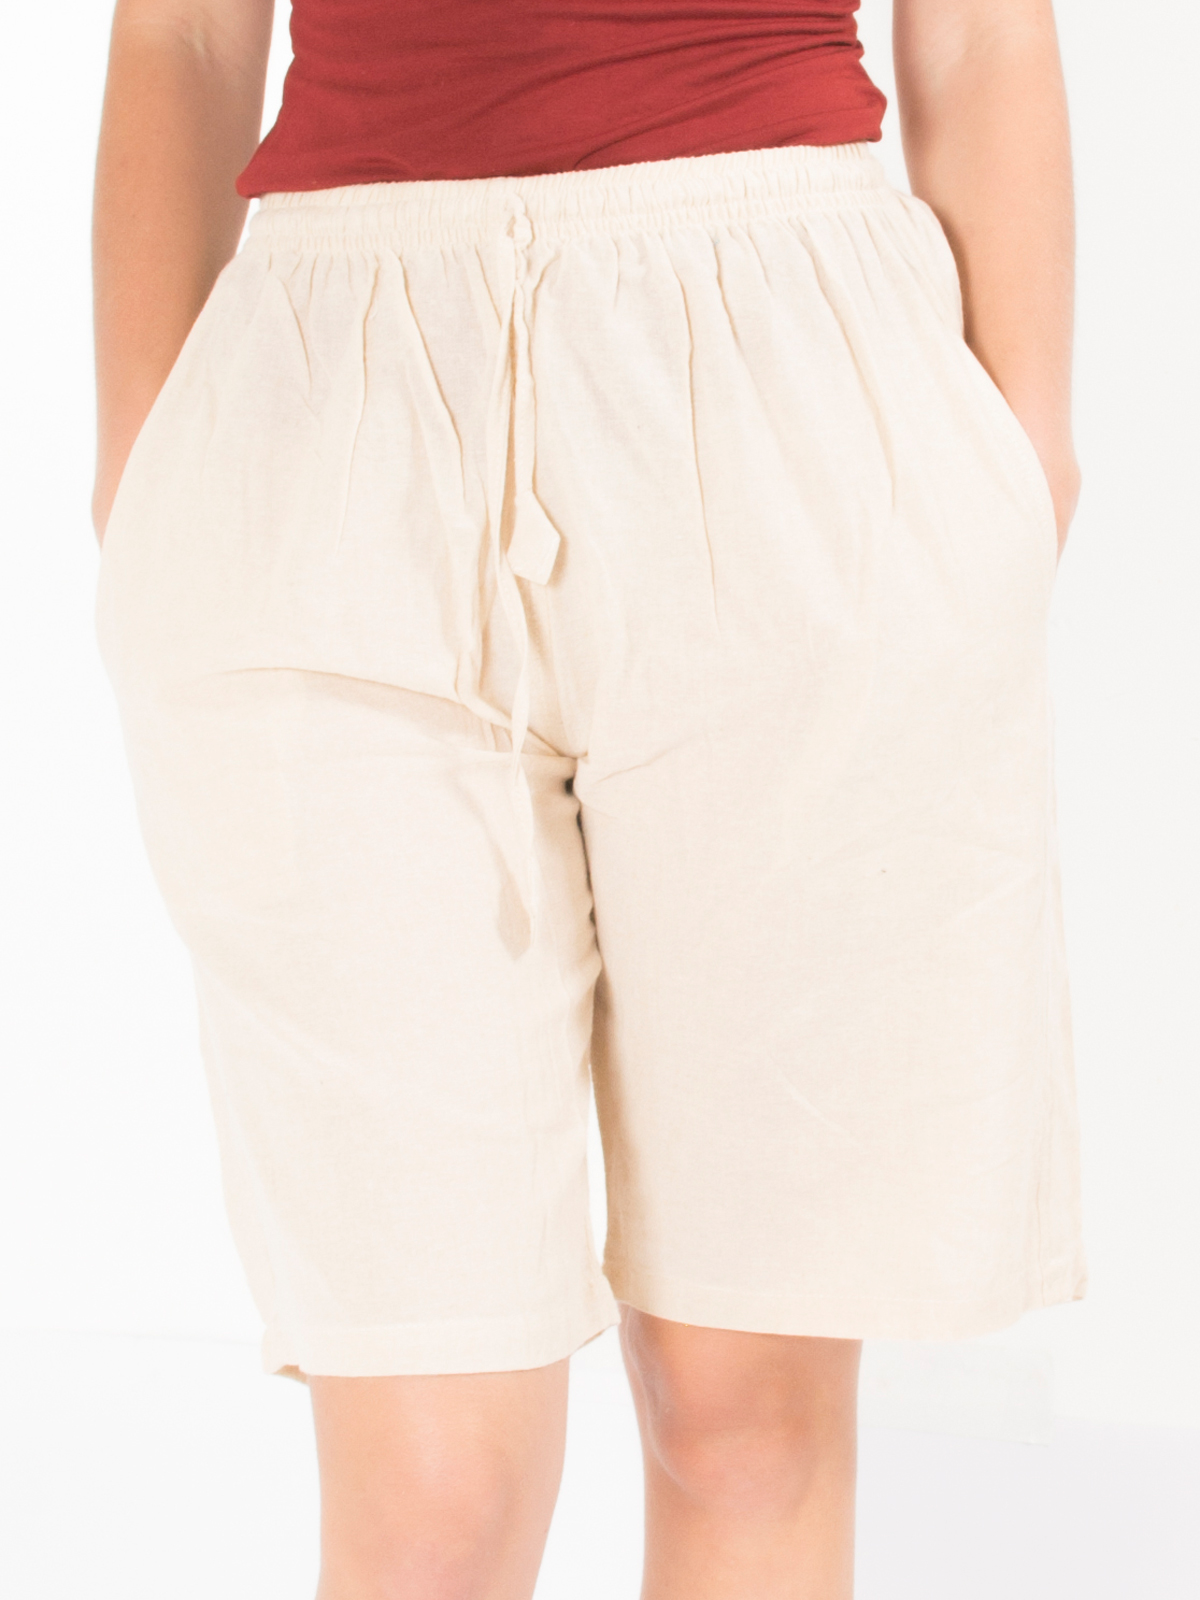 Short ethnique beige uni simple